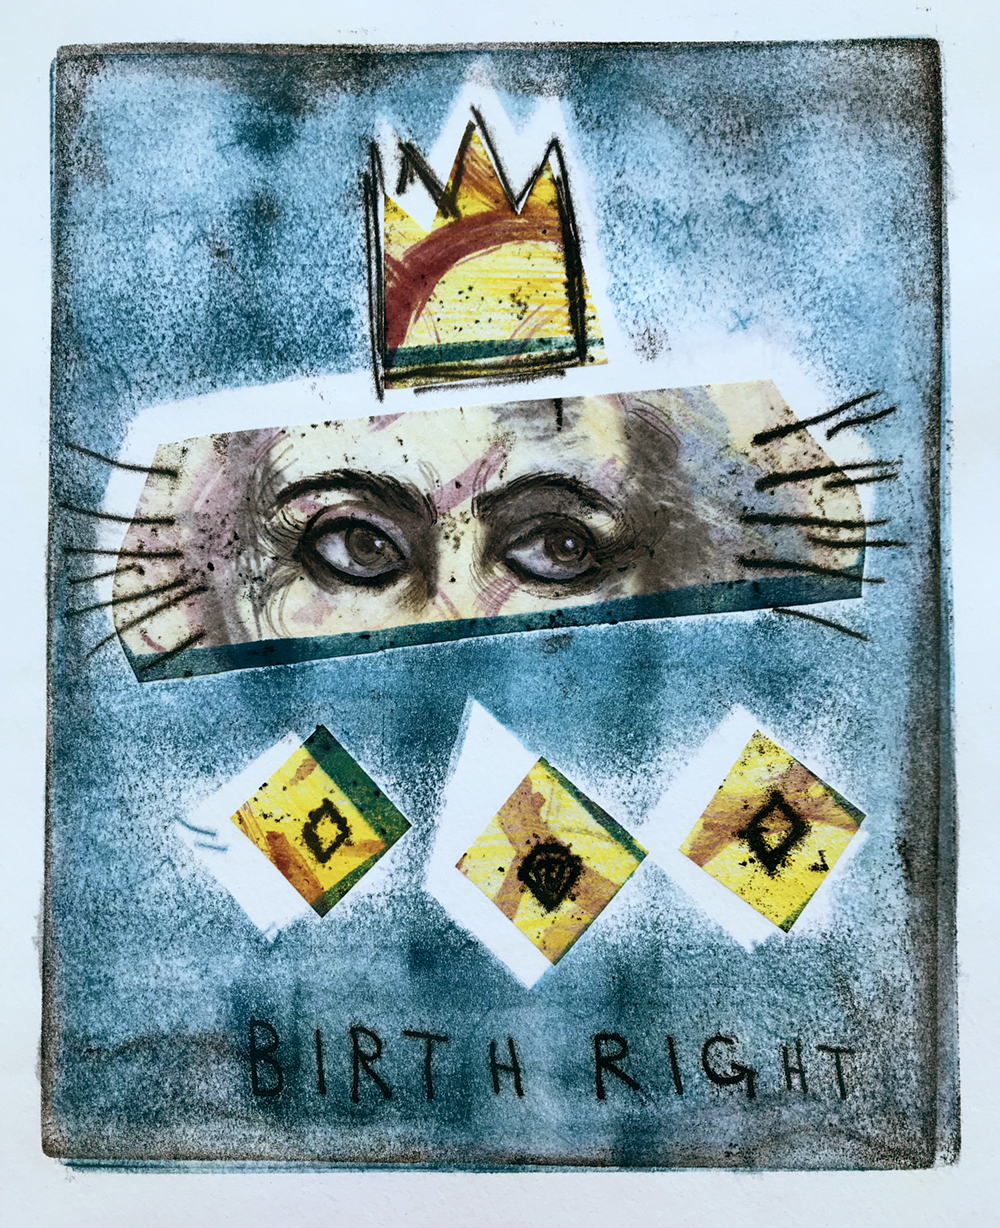 birthright-copy_orig.png